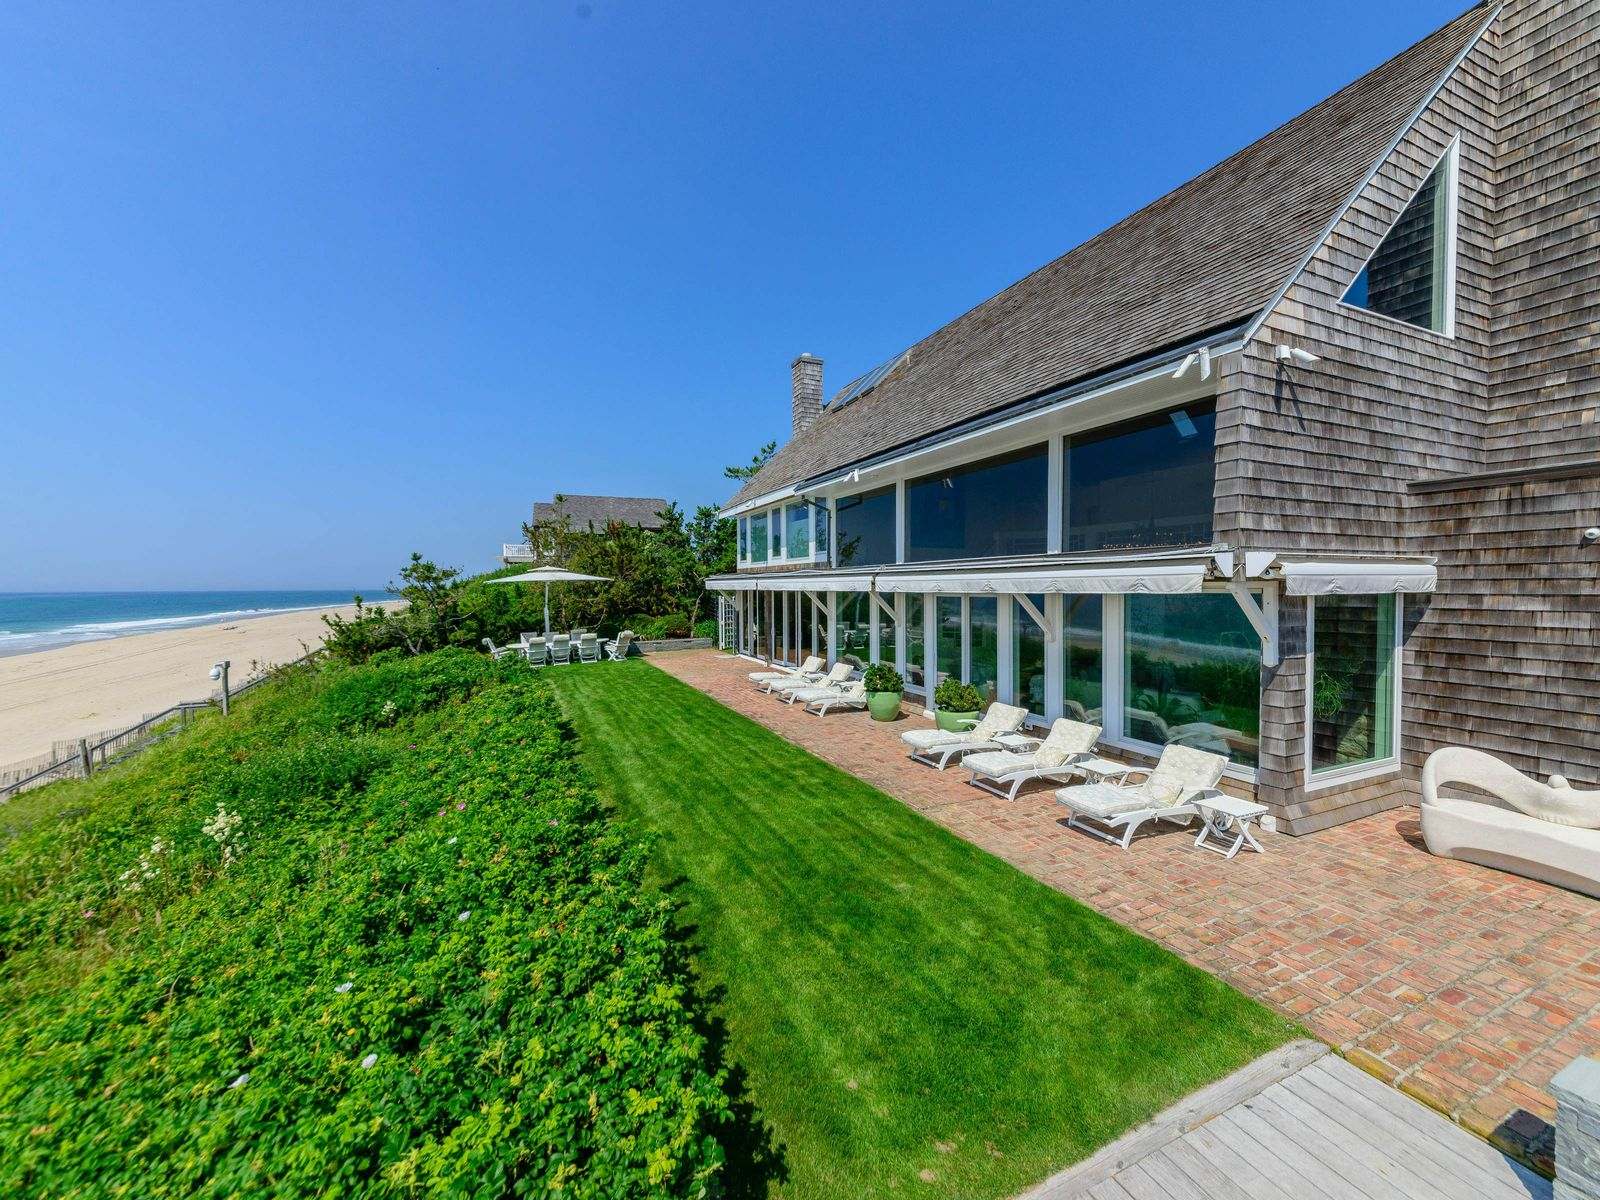 Lily Pond Oceanfront , East Hampton NY Single Family Home - Hamptons Real Estate